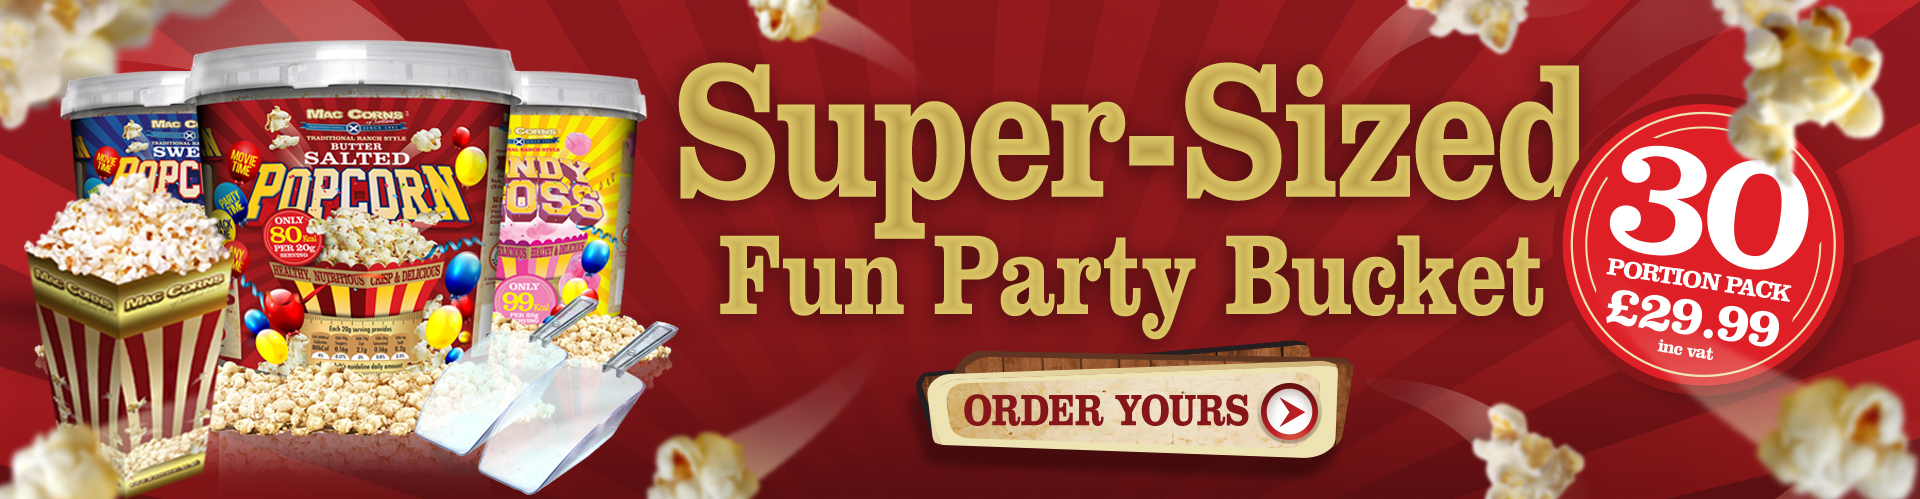 Super Sized Fun Party Bucket